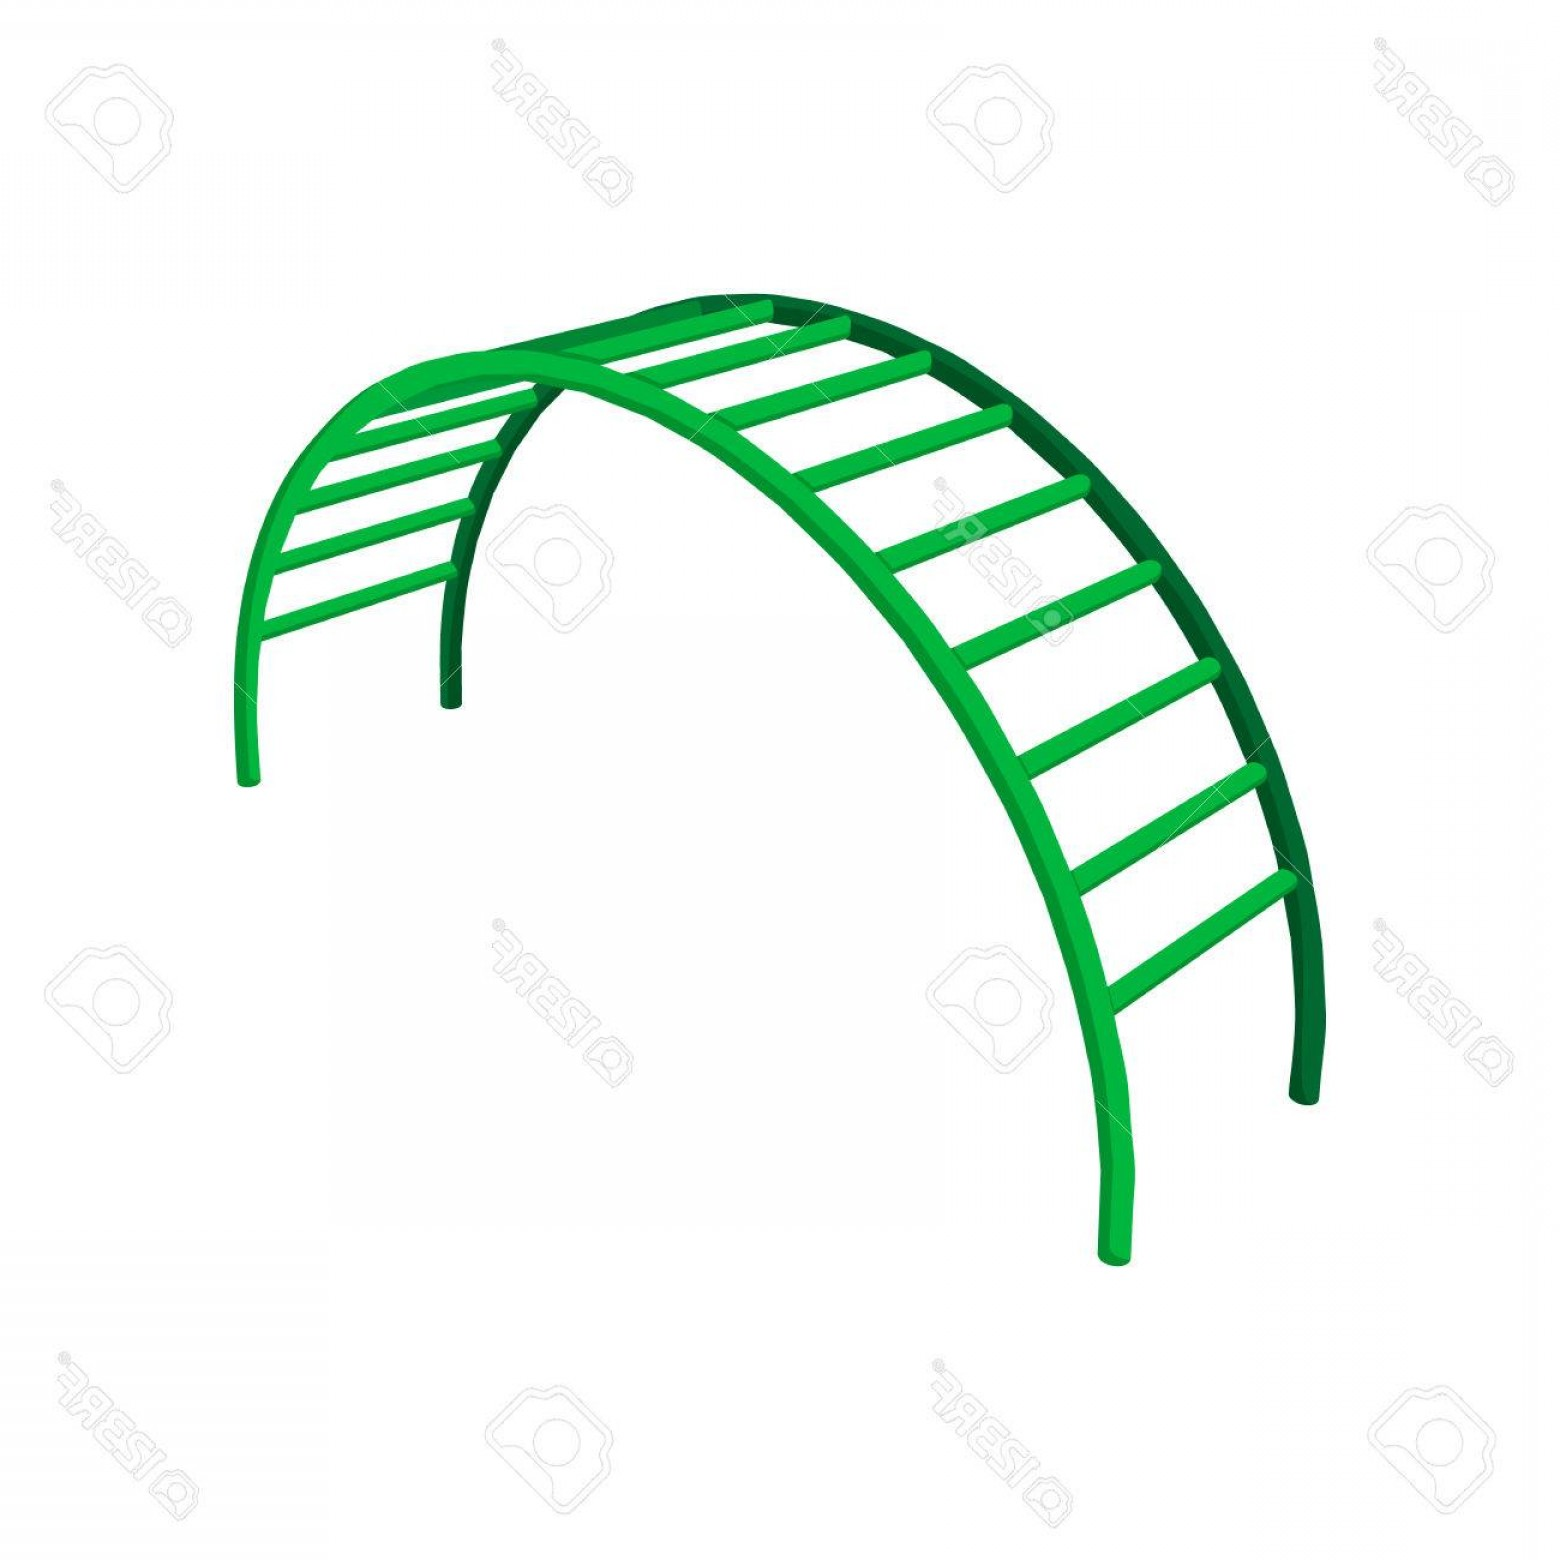 Bing Icon Vector: Photostock Vector Climbing Stairs Cartoon Icon Clombing Frame On A White Background